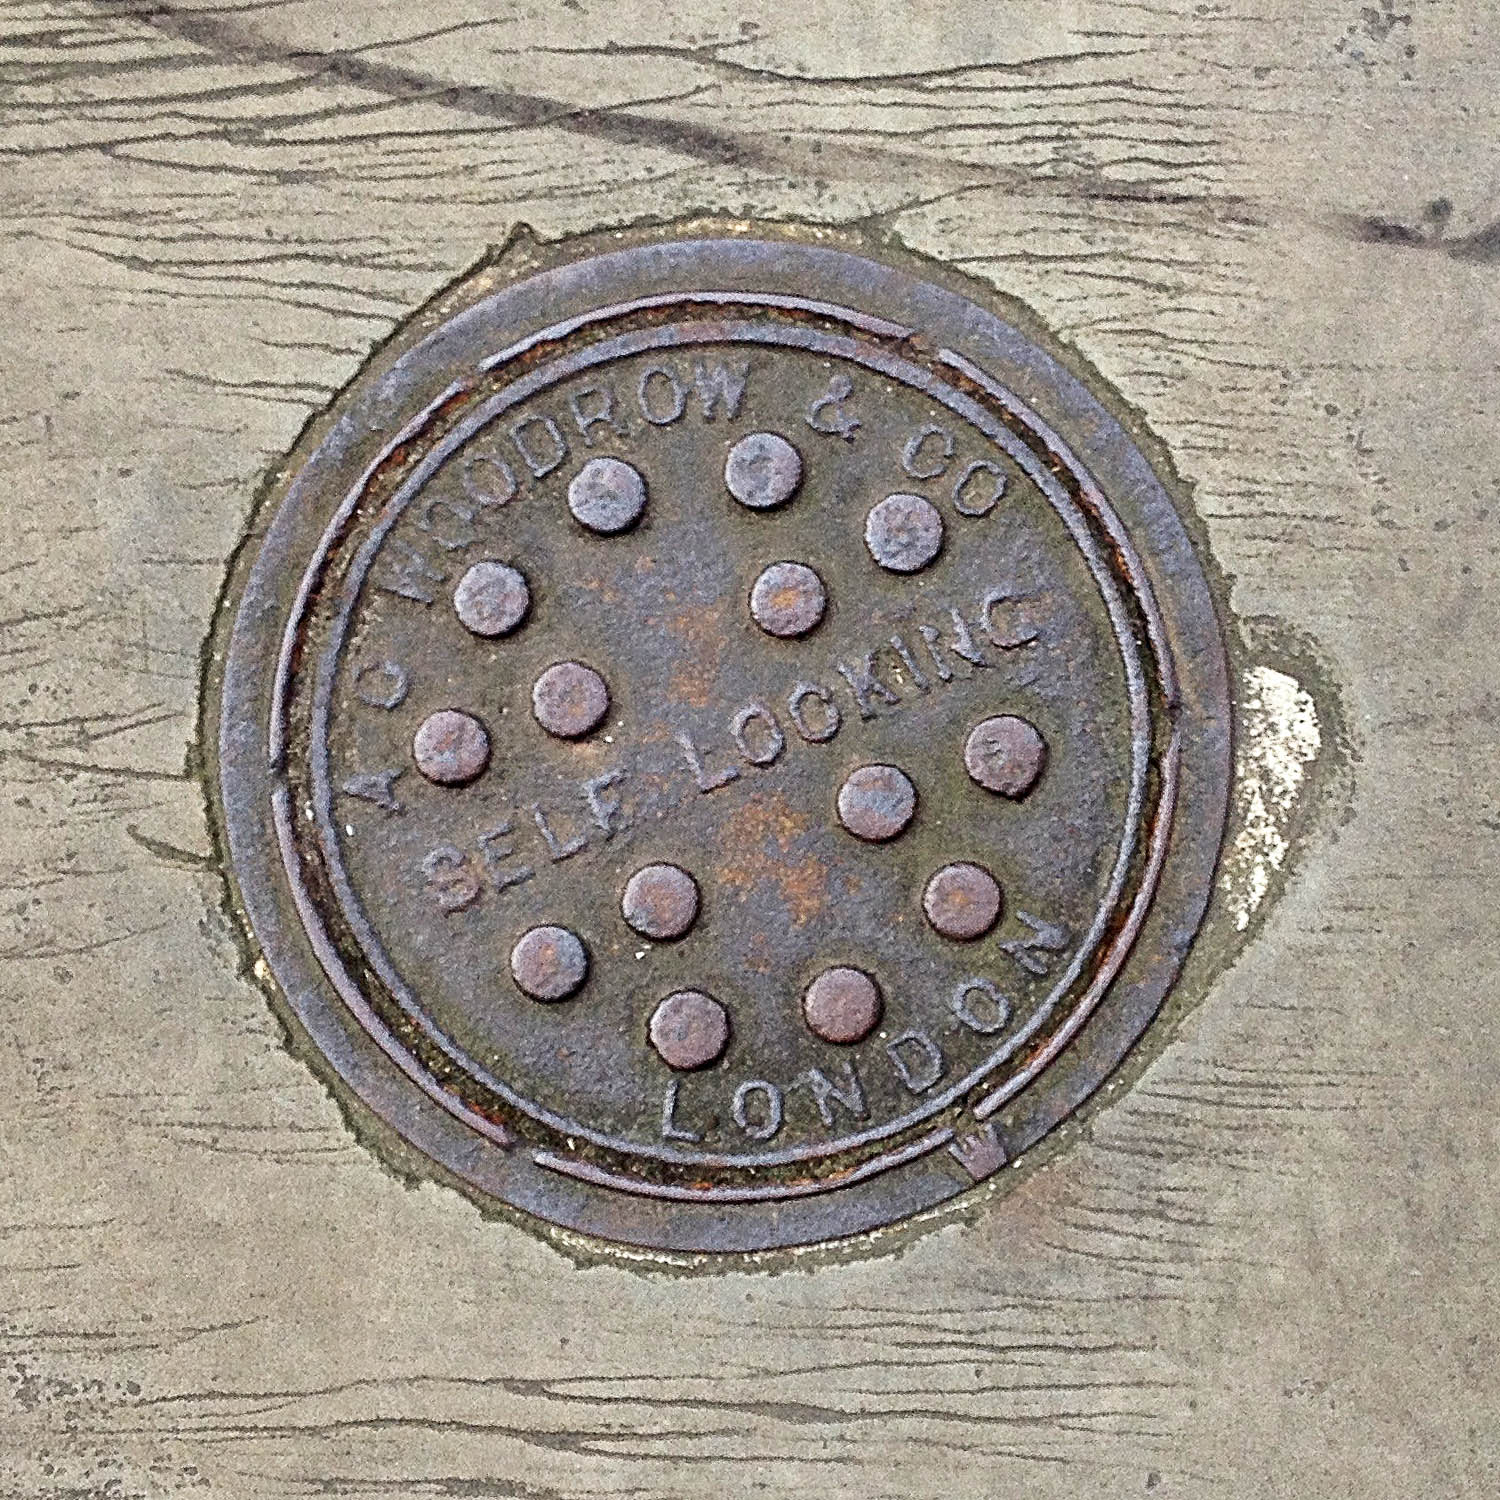 Manhole Cover, London - Cast iron inscribed with A C Woodrow & Co Self Locking London - 14 raised circles forming pattern